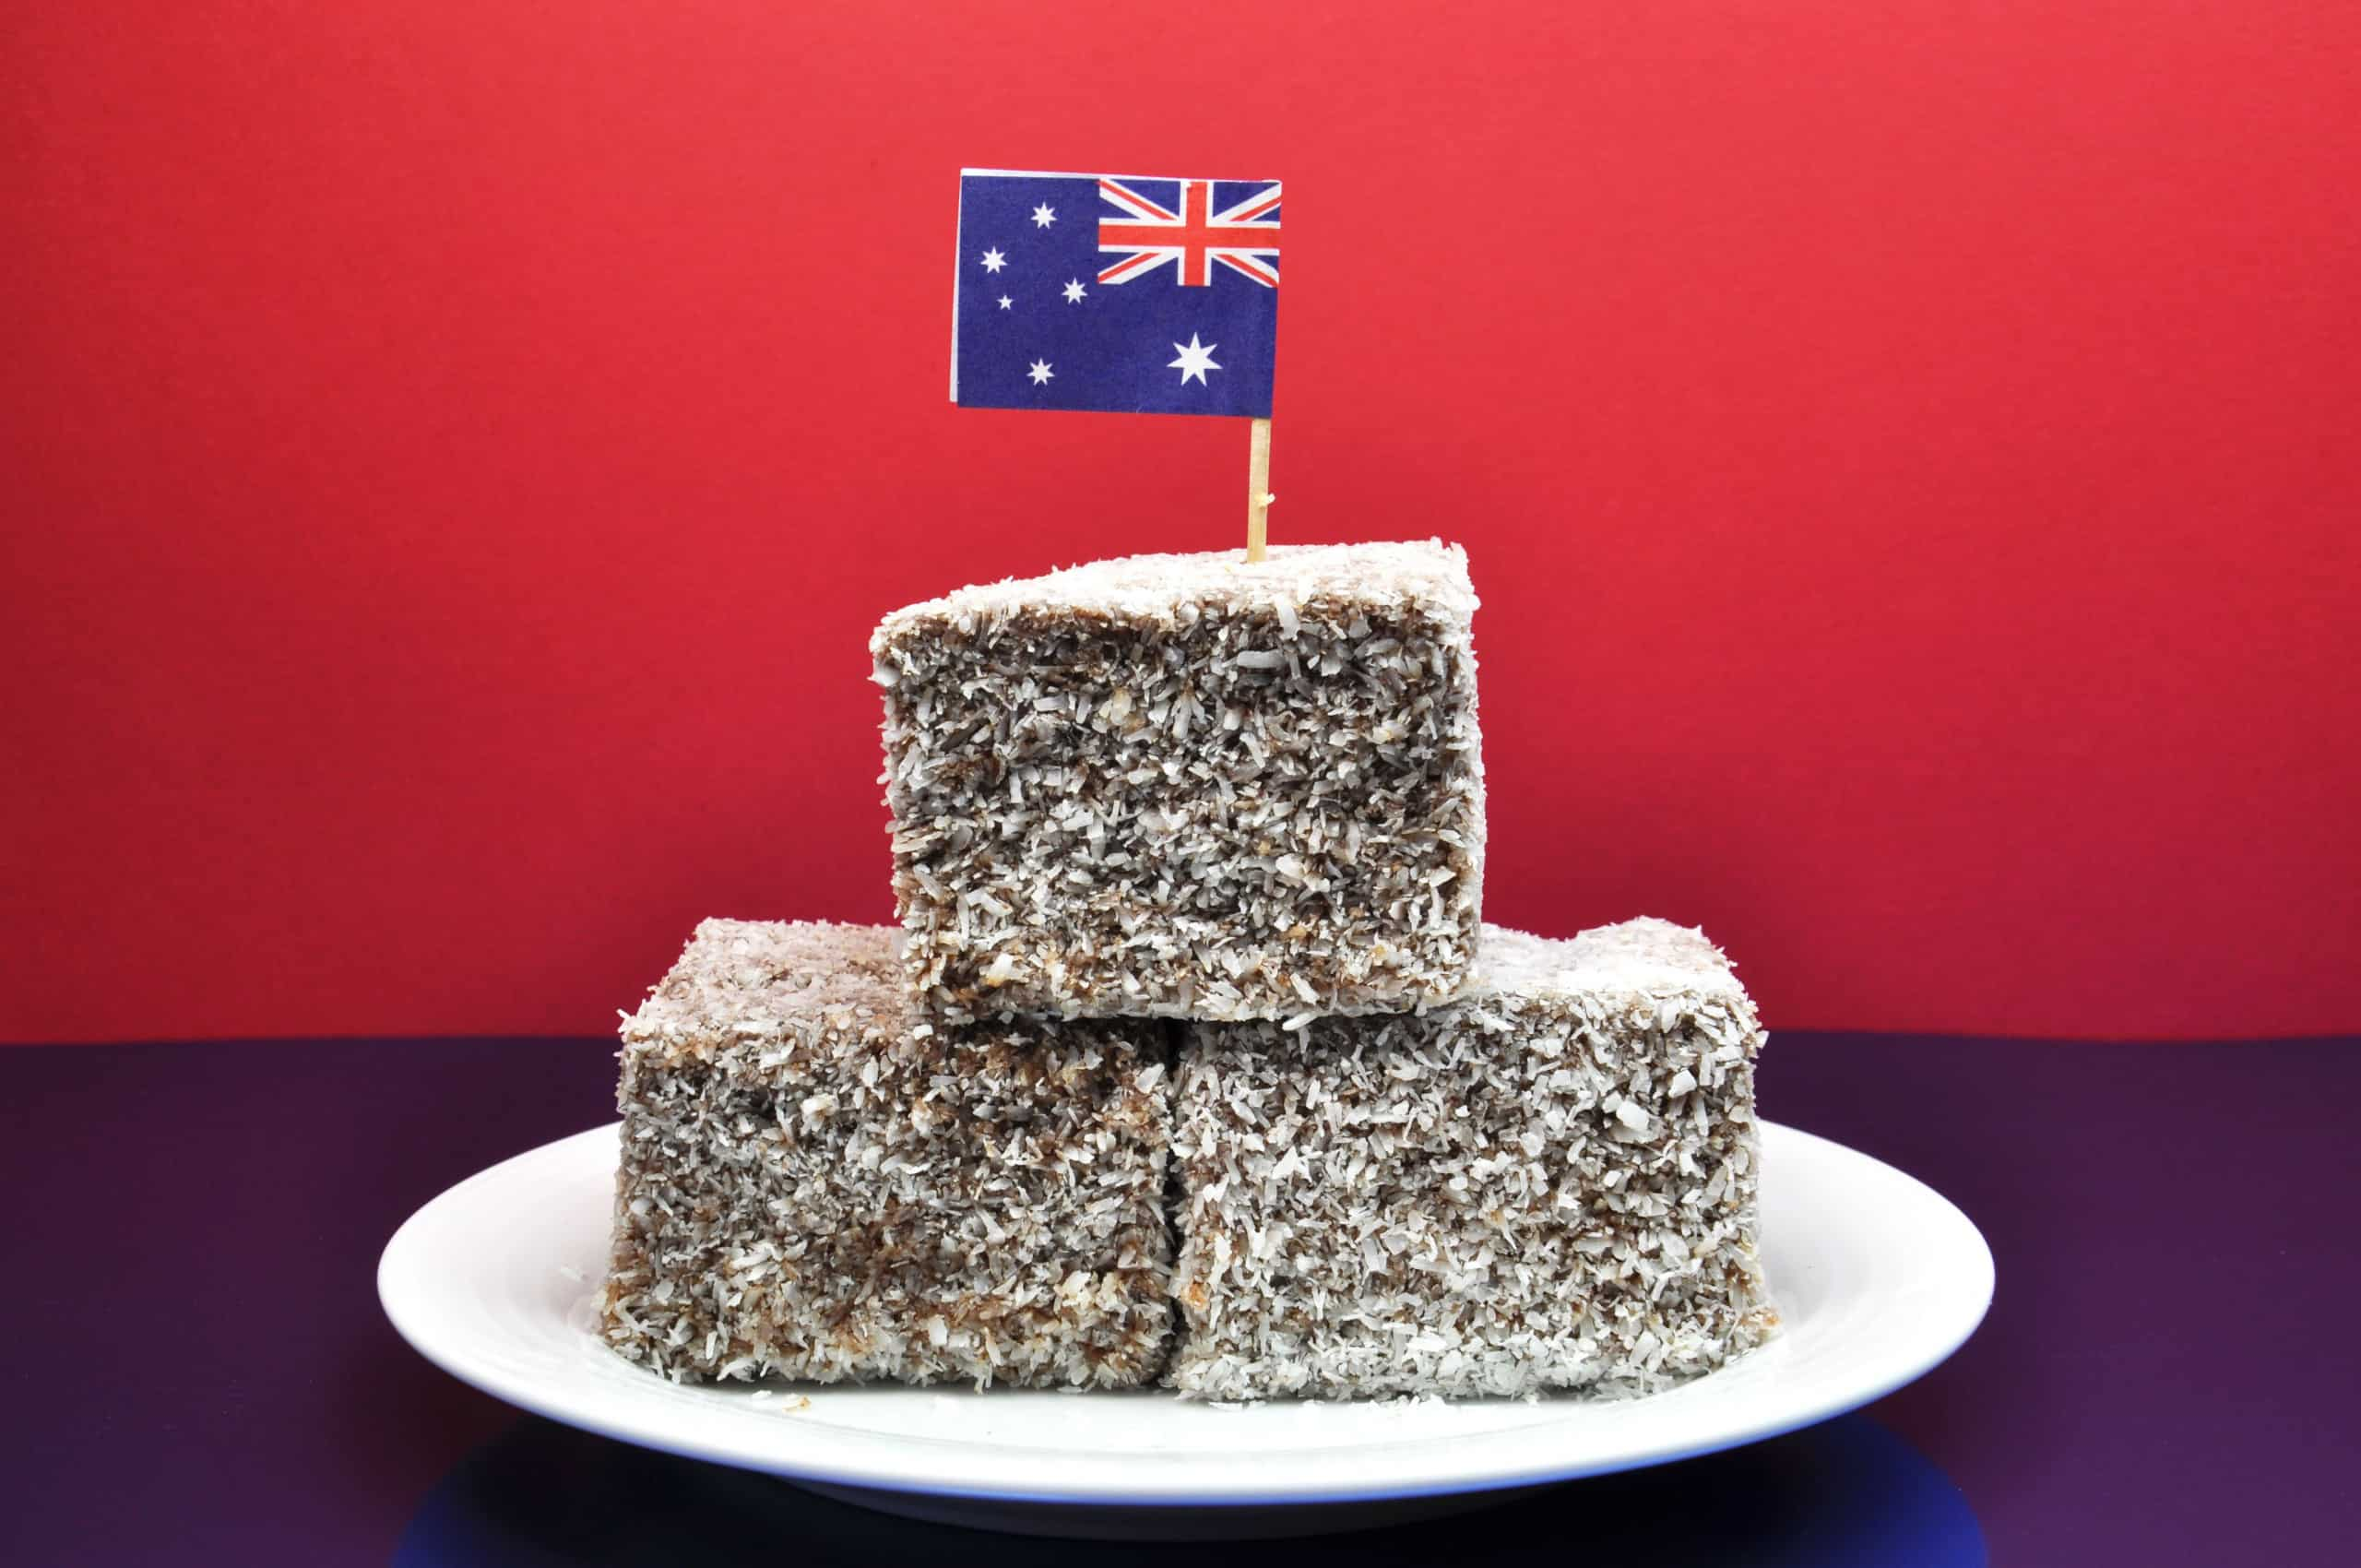 Australia Day January 26, celebrate with tradional Aussie tucker food such as lamingtons, meat pies and tomato sauce, and yummy fairy bread.